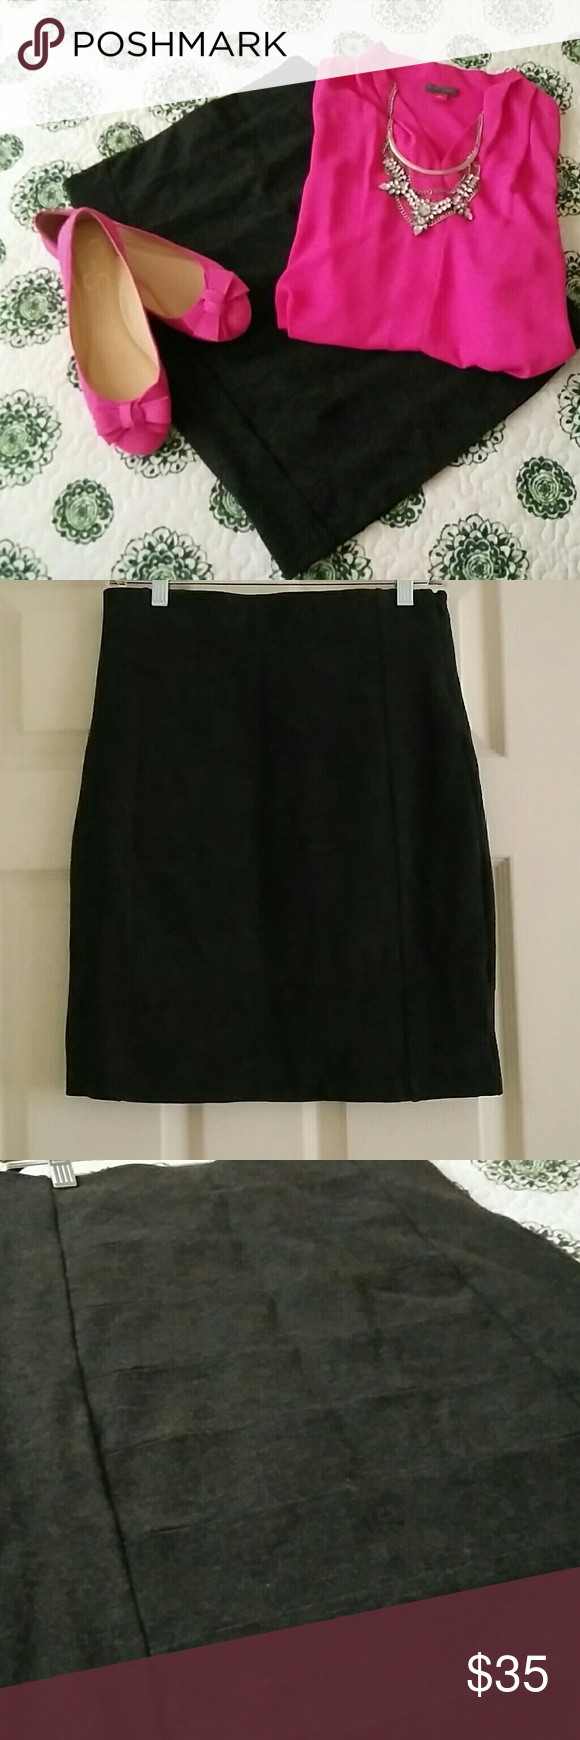 """NWOT WHBM Body Con Pencil Skirt New charcoal gray skirt that's super adorable! 67% viscose, 29% nylon, 4% spandex. Would fit a size 4 very well.  Has a lining. 30"""" long, waist laying flat across the top is 14"""". Fits right at natural waist and hits right above the knee. White House Black Market Skirts Pencil"""